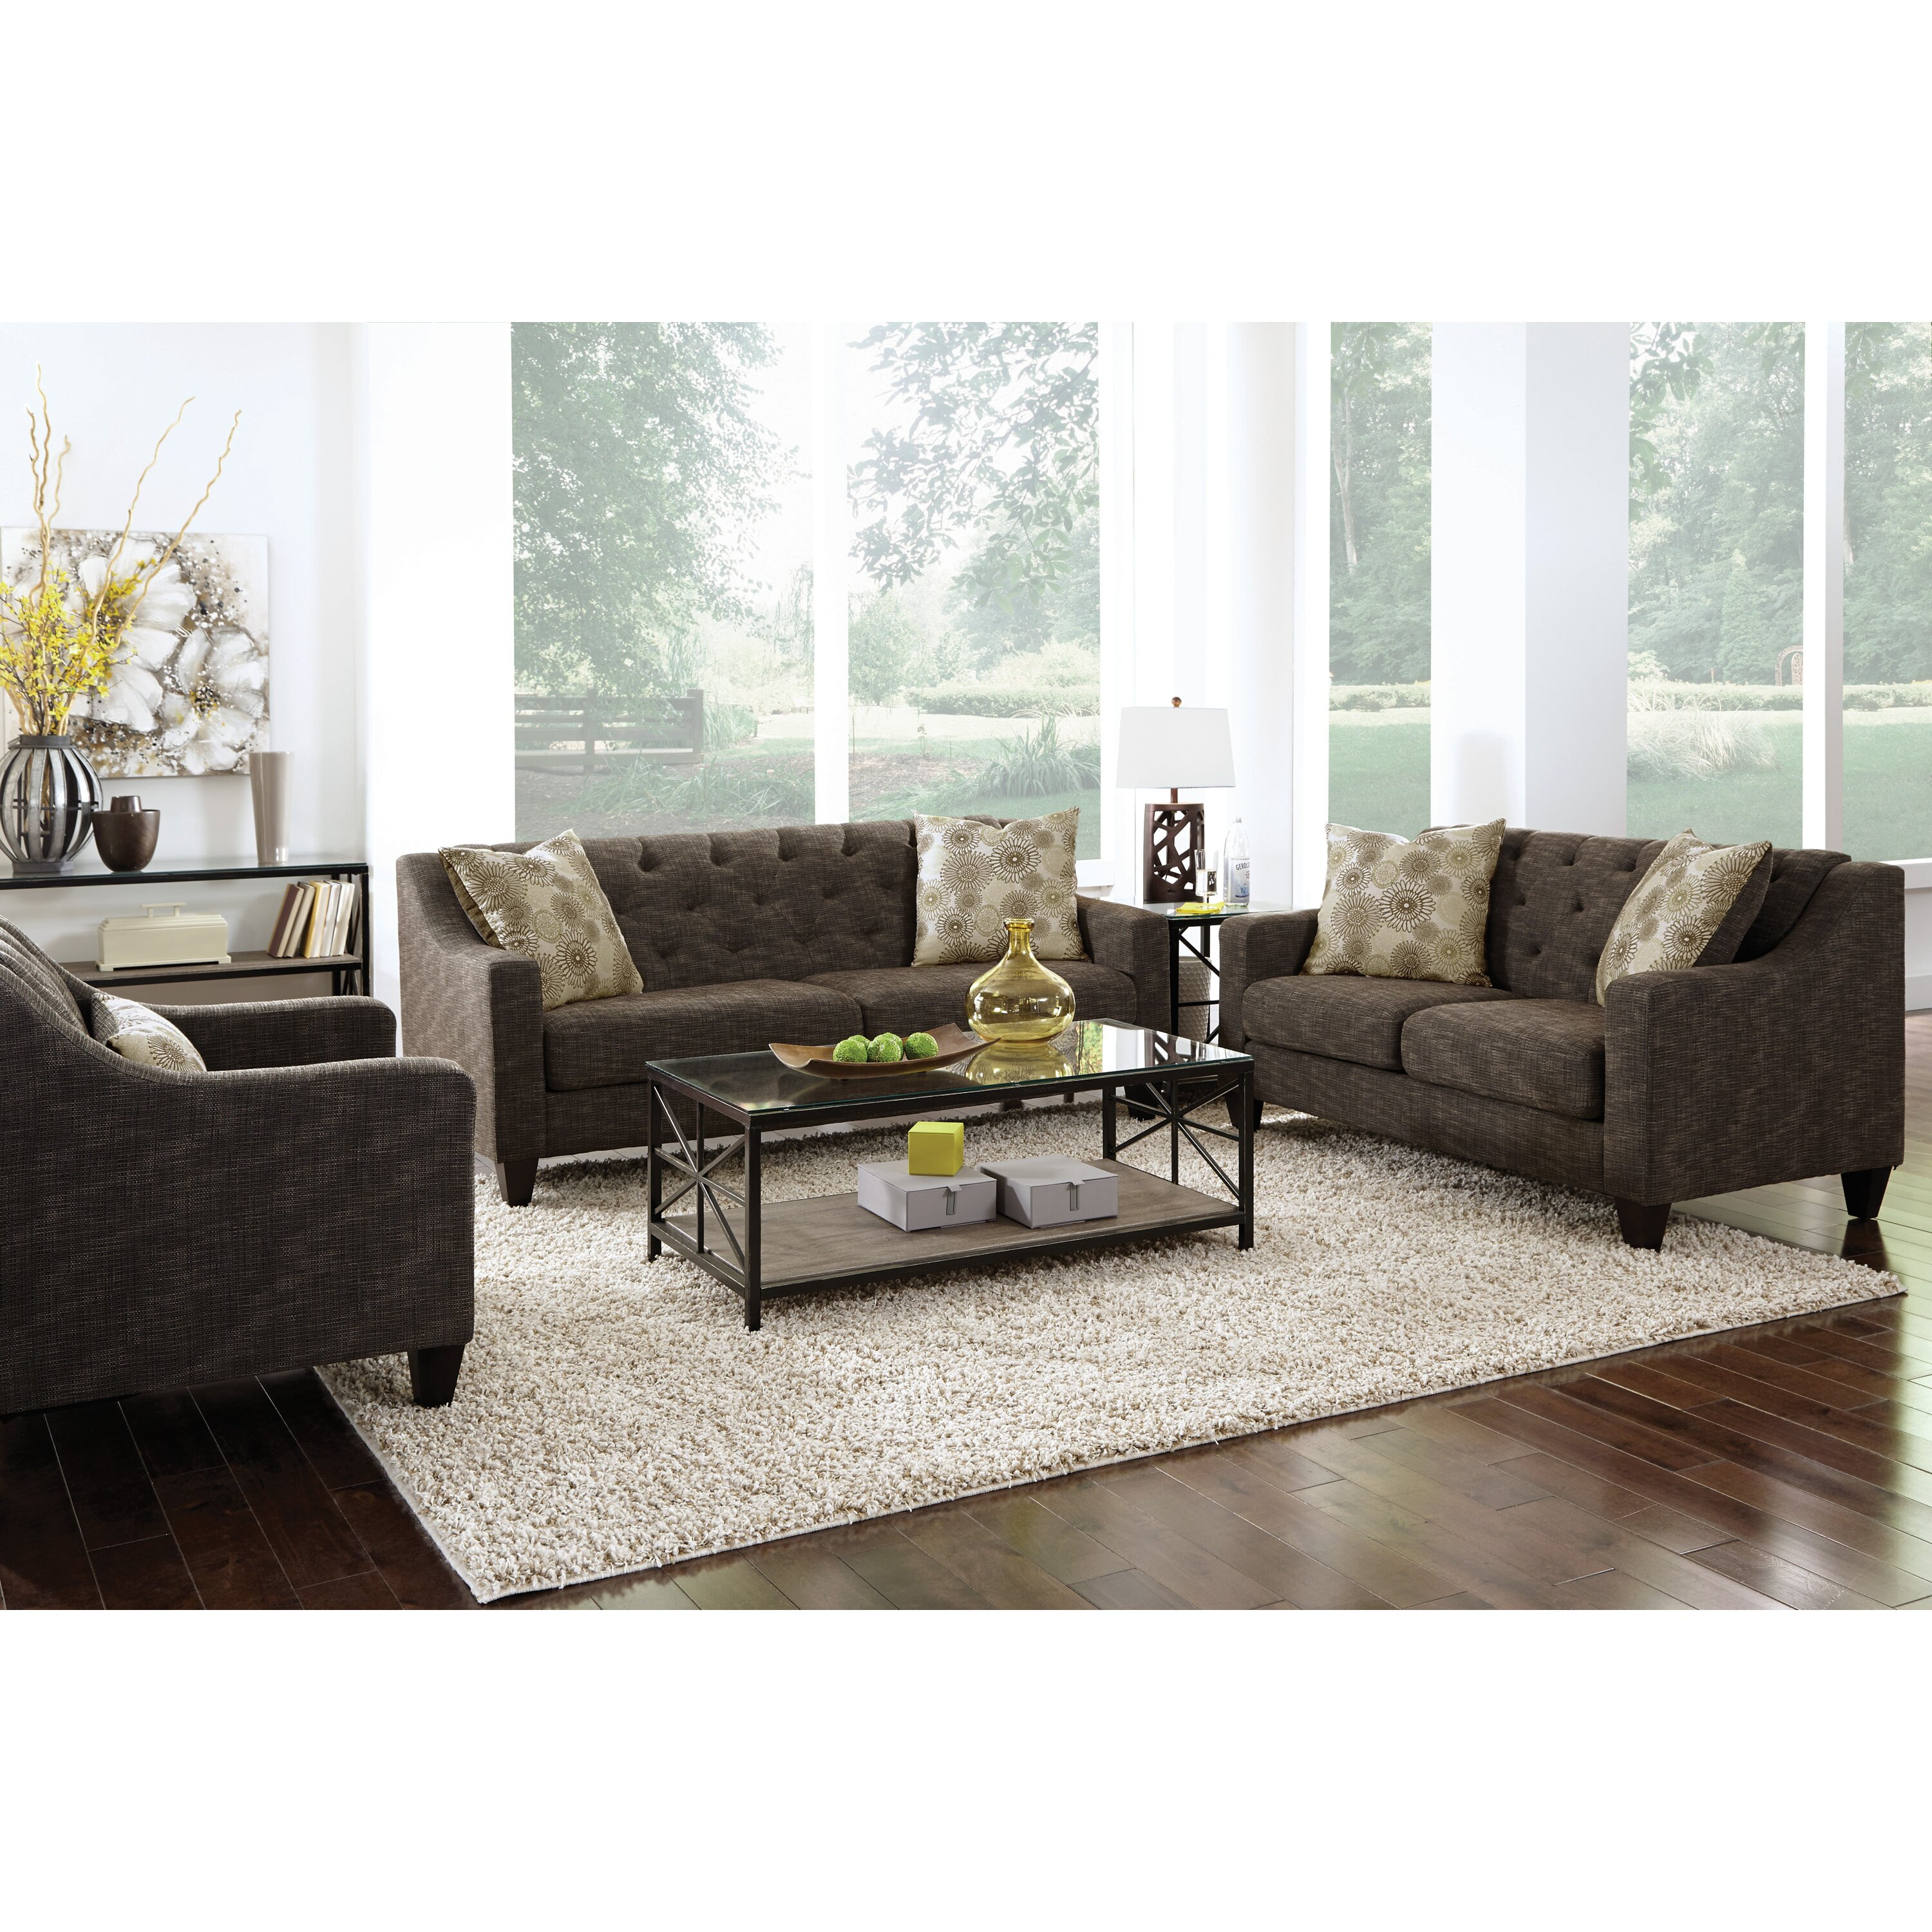 Avondale Living Room Collection Wayfair